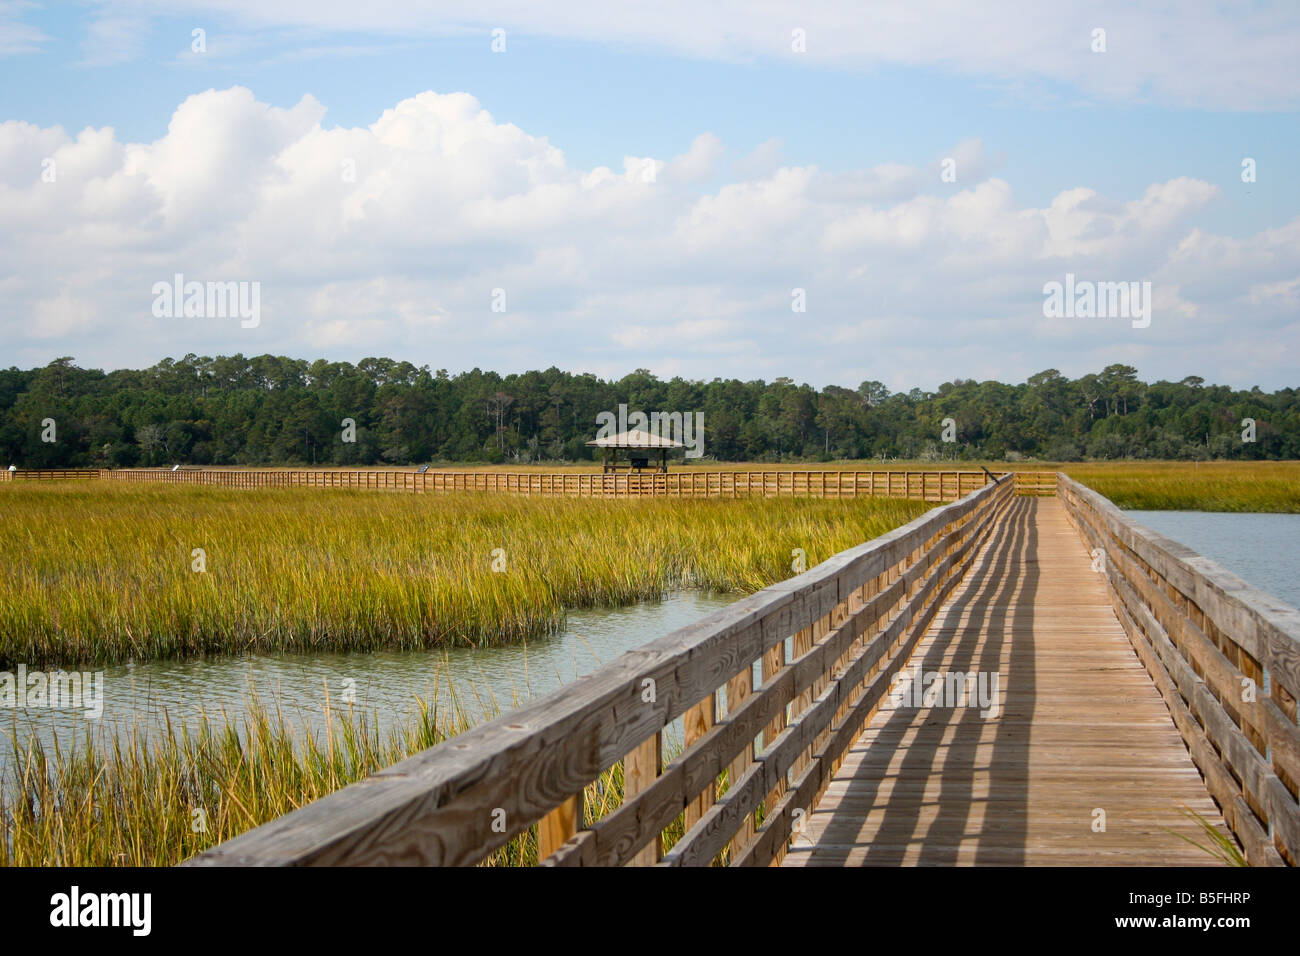 A wooden boardwalk leads across the salt marsh at Huntington Beach State Park in South Carolina. - Stock Image